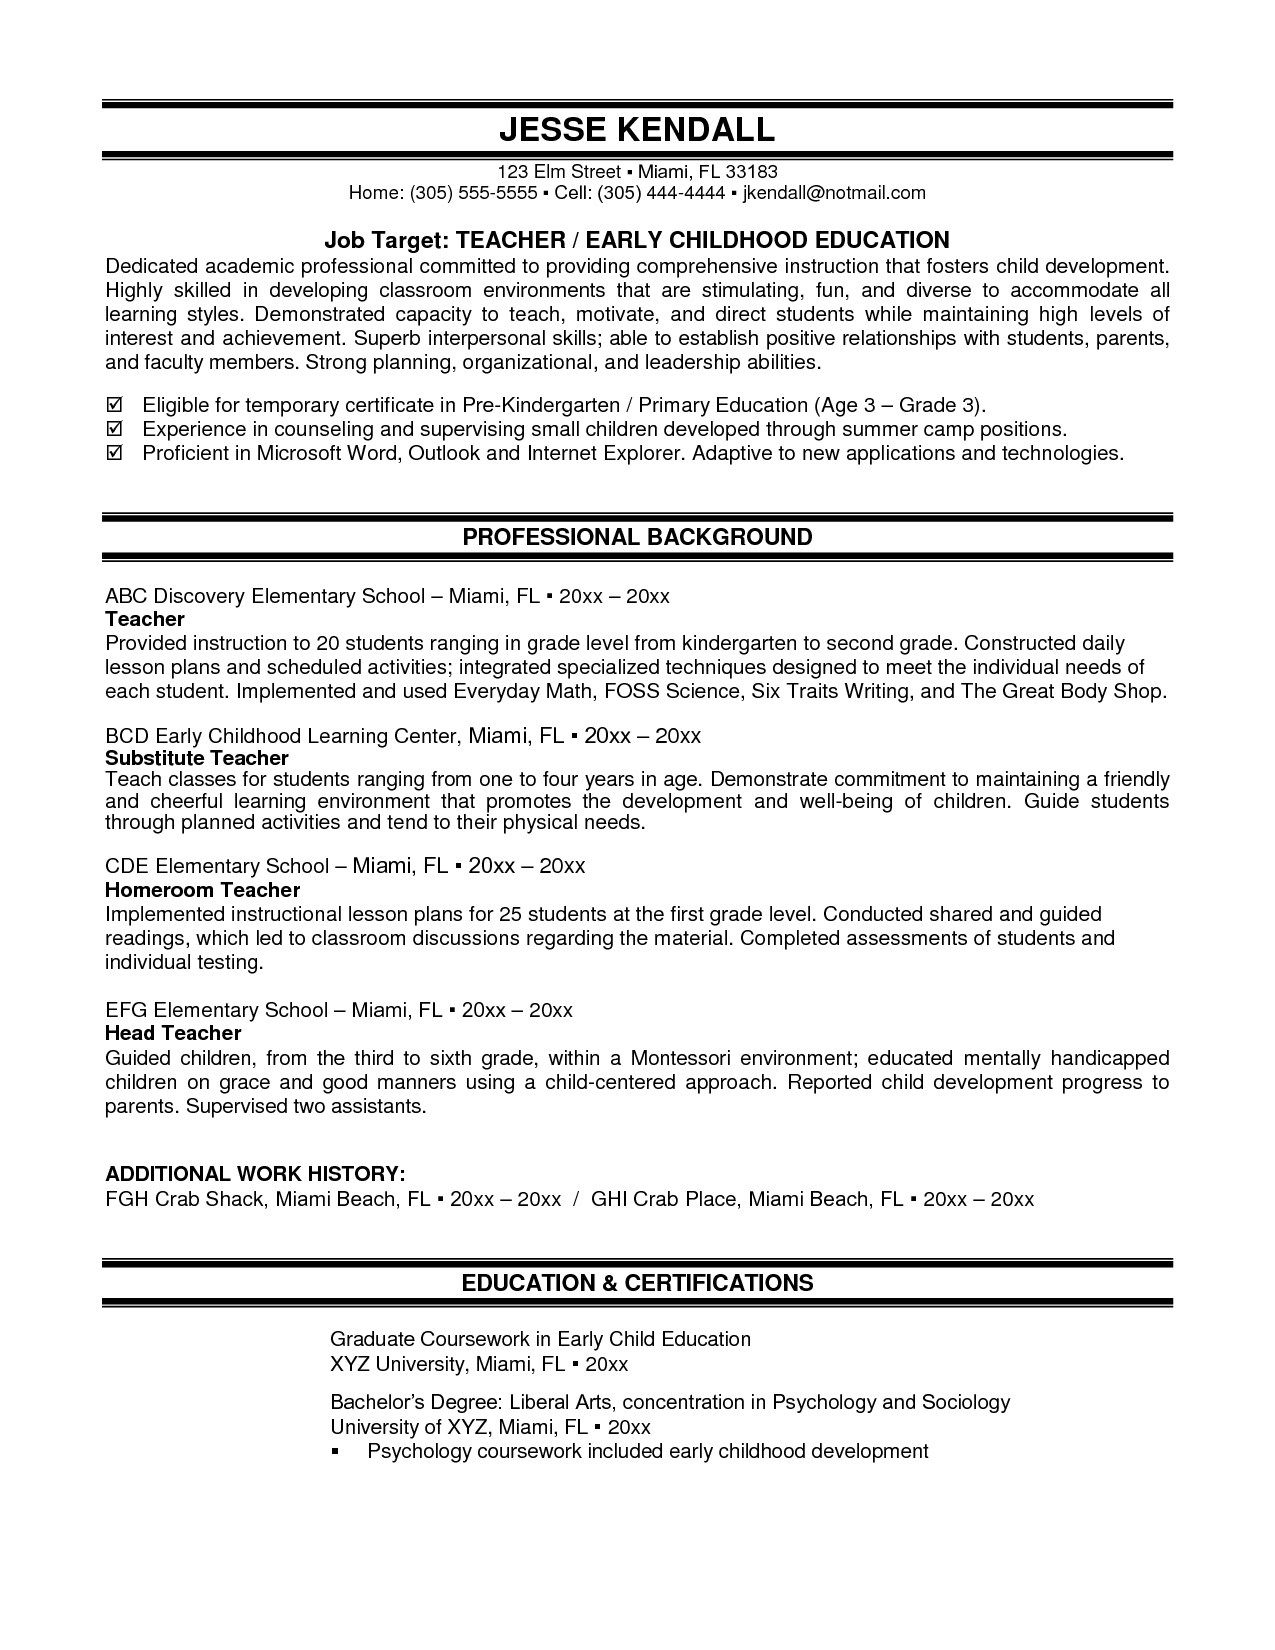 Private Music Teacher Resume Sample - http://ersume.com/private-